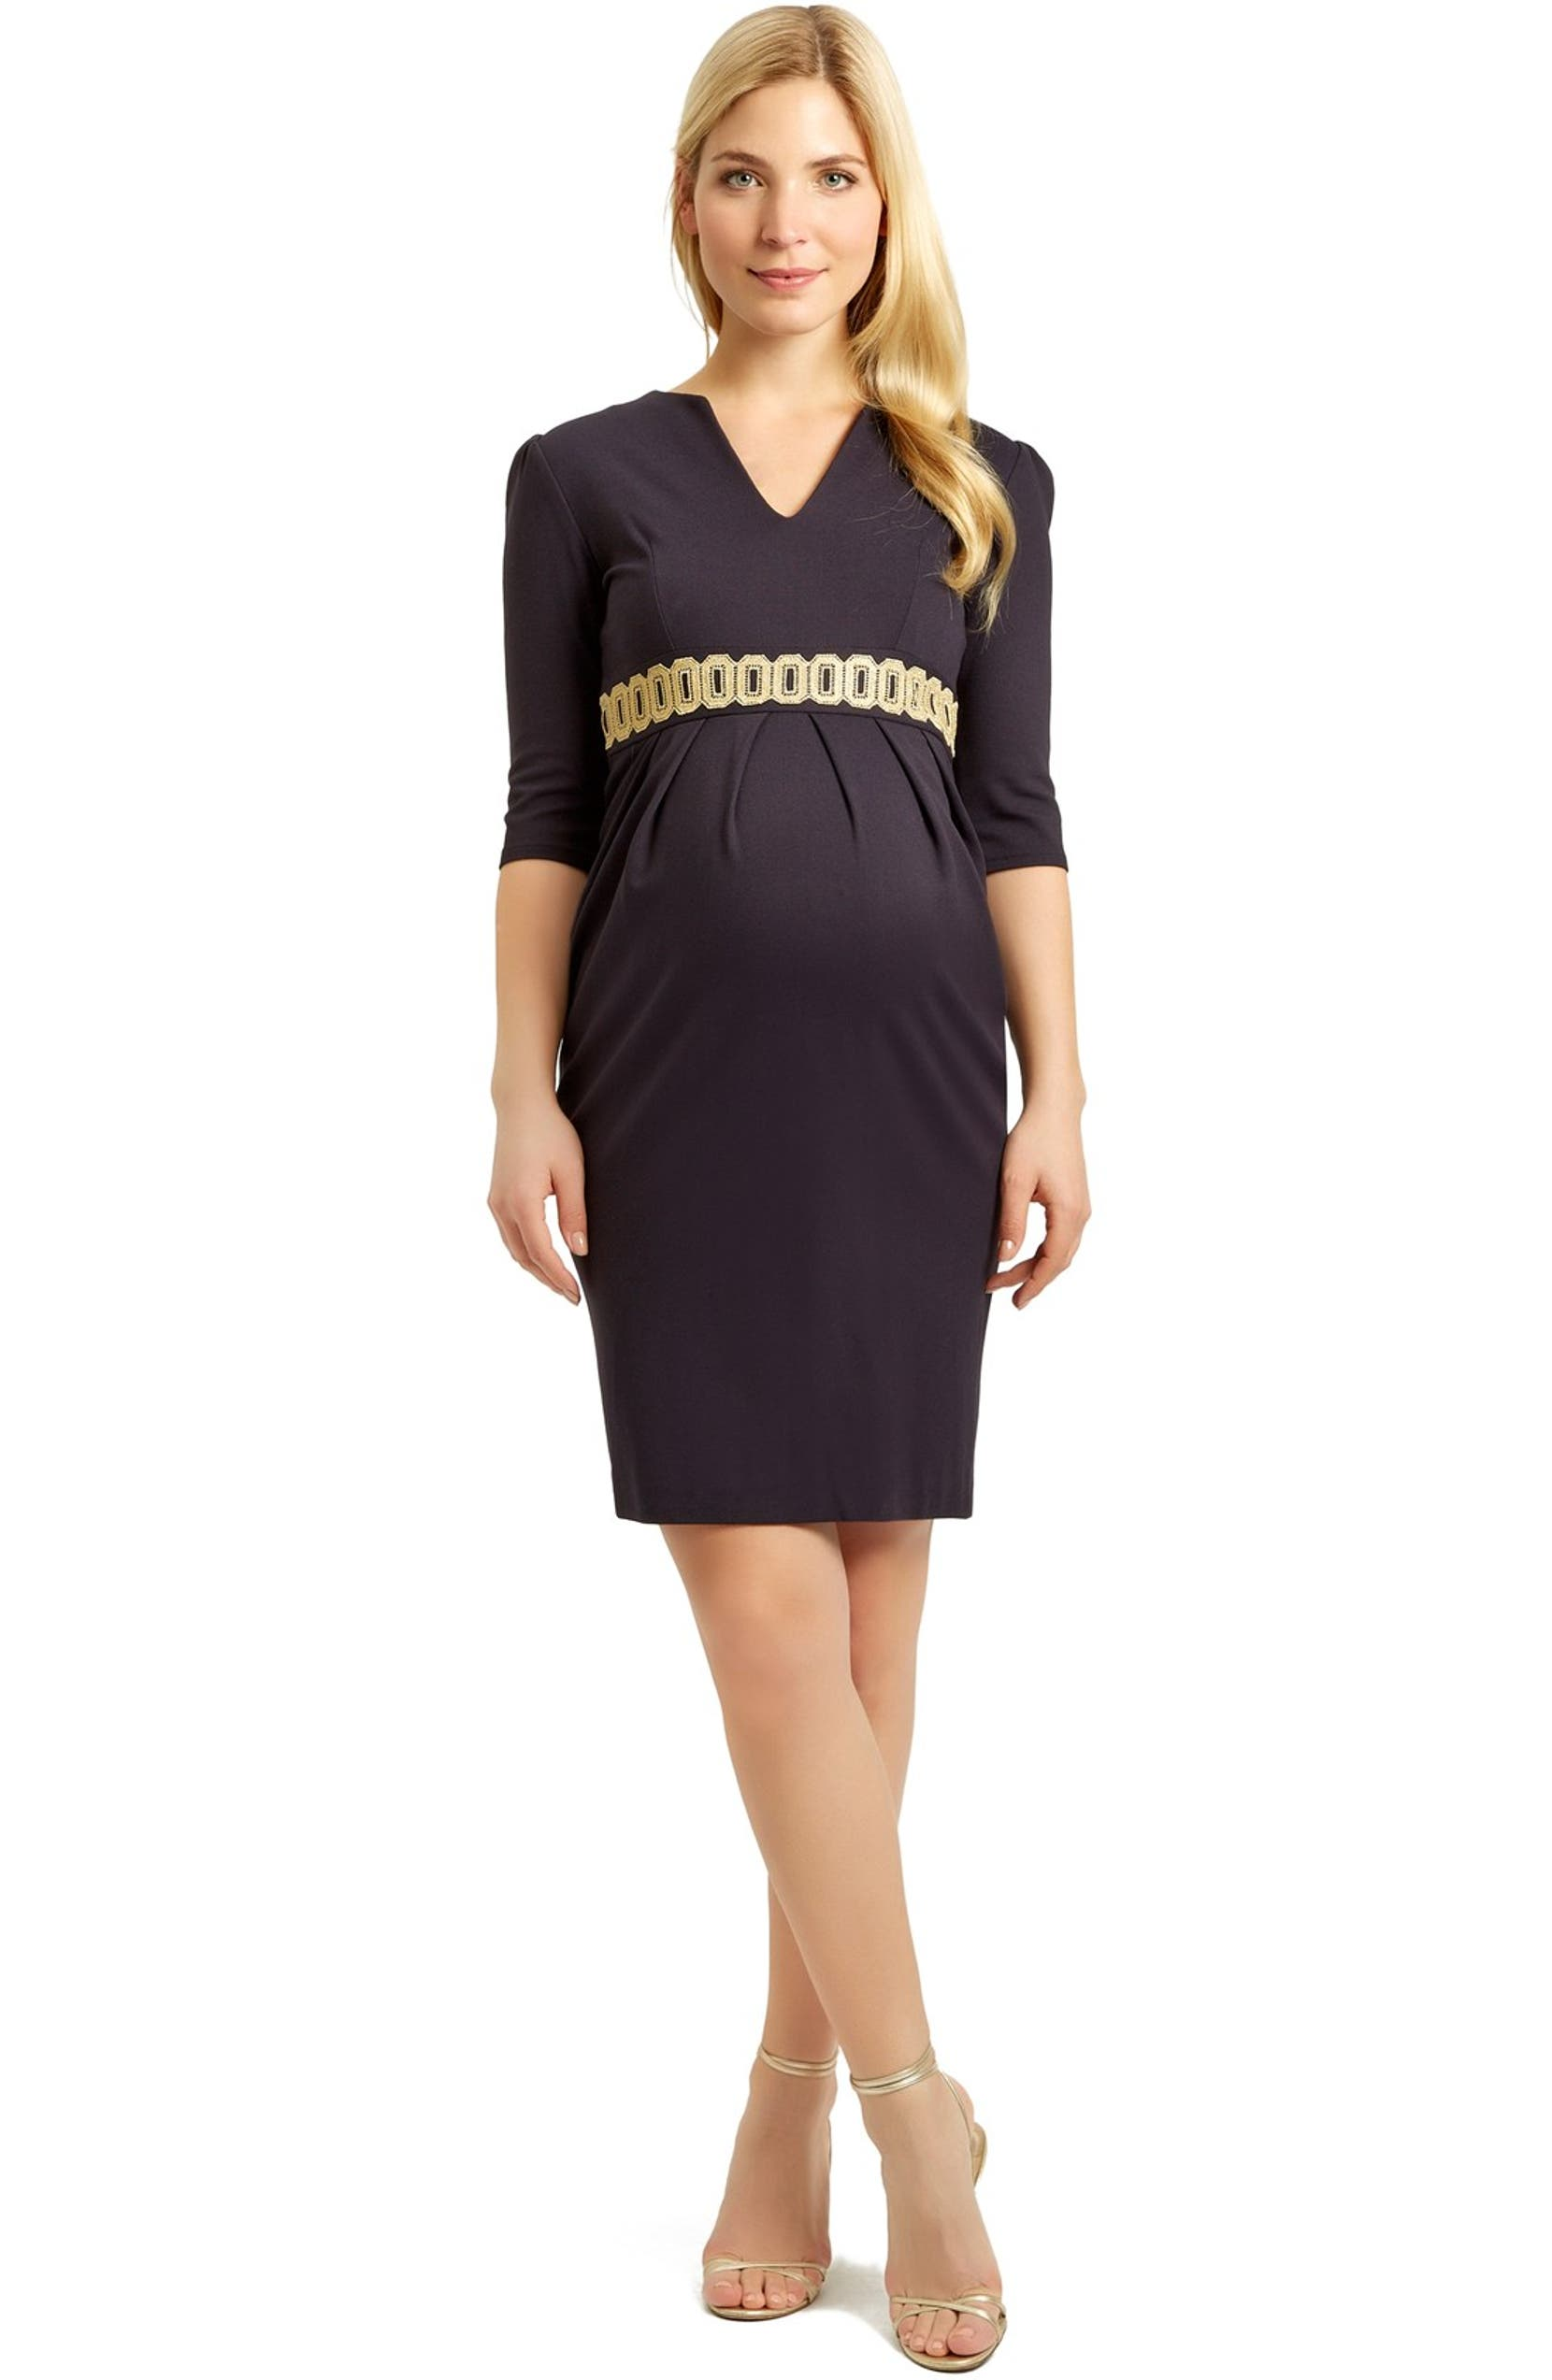 3d6d4a78313d7 Madderson London 'Coco' Maternity Dress | Nordstrom